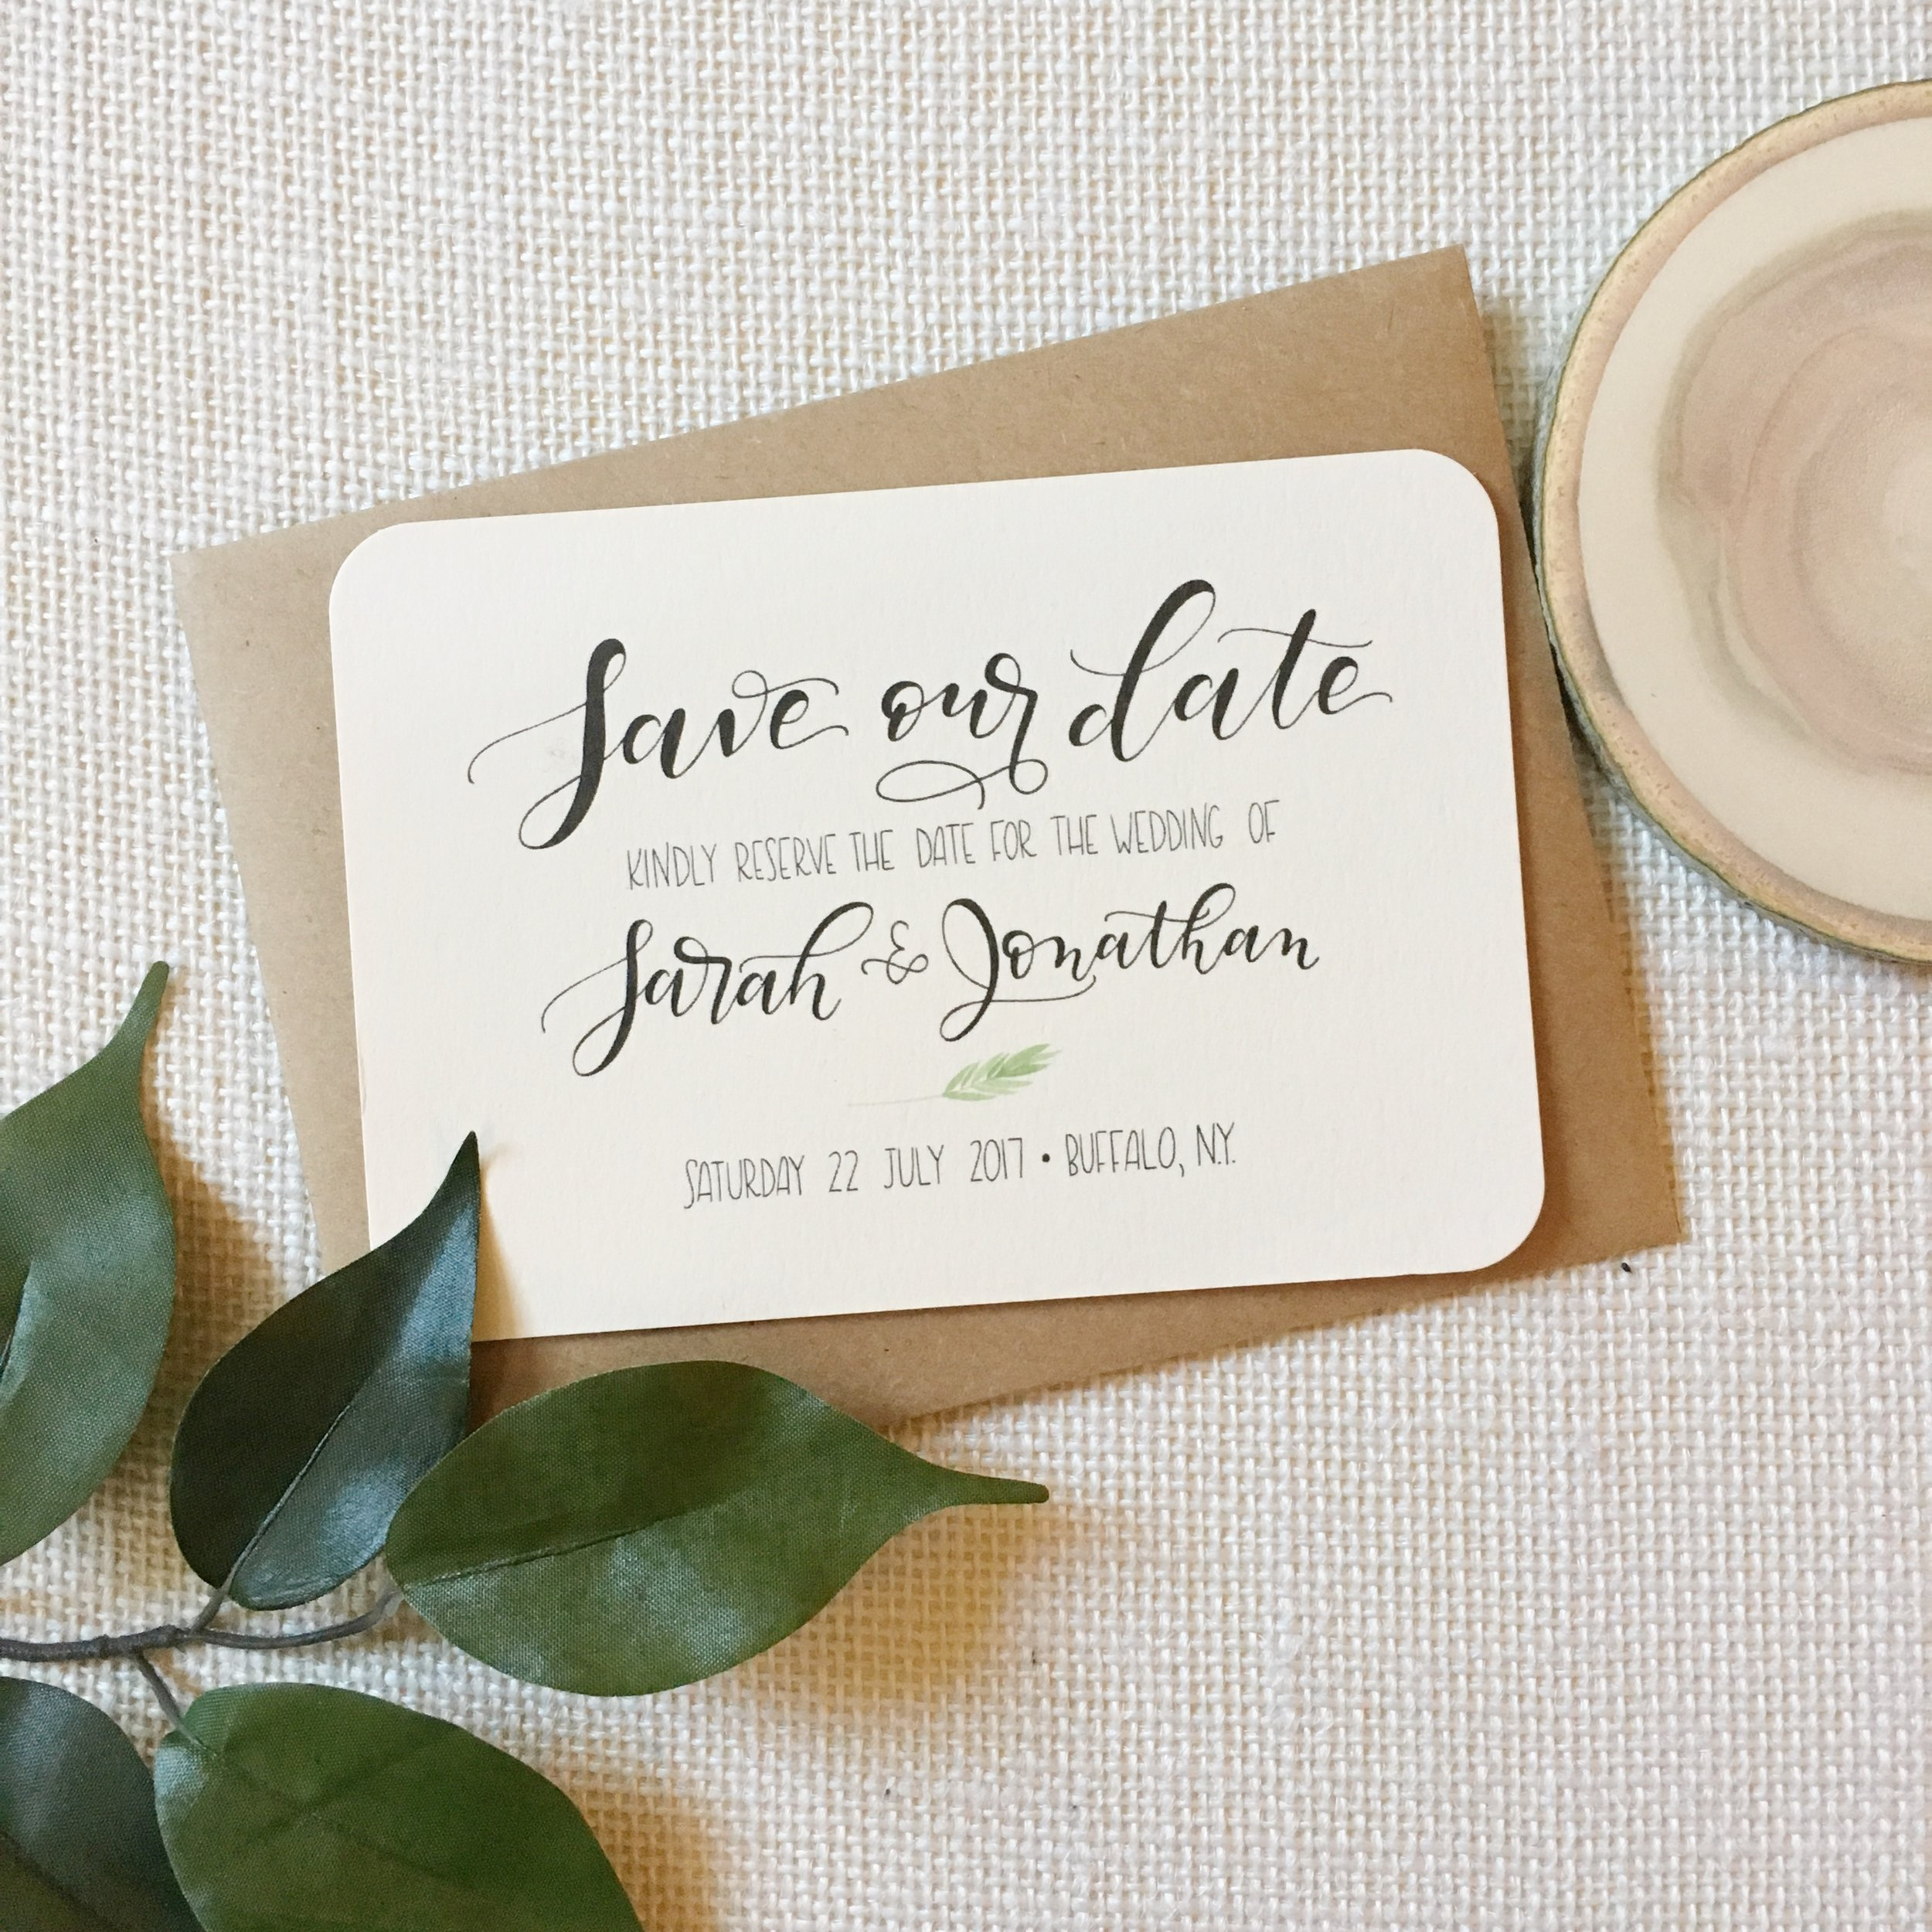 save our date product photo sarah.jpg